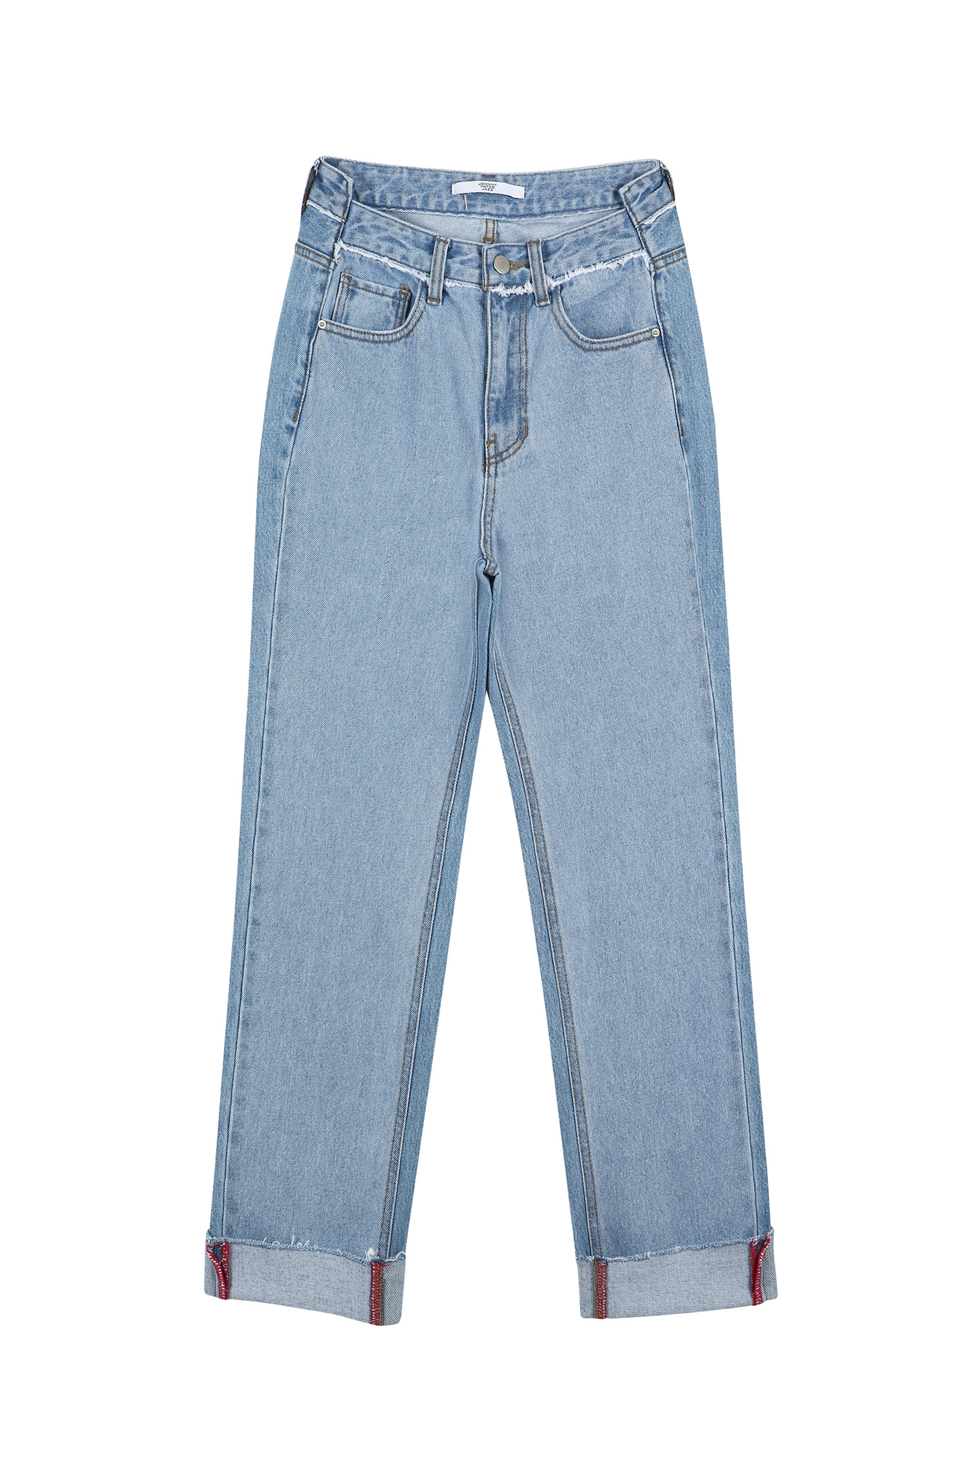 TWO-TONE DENIM - LIGHT BLUE